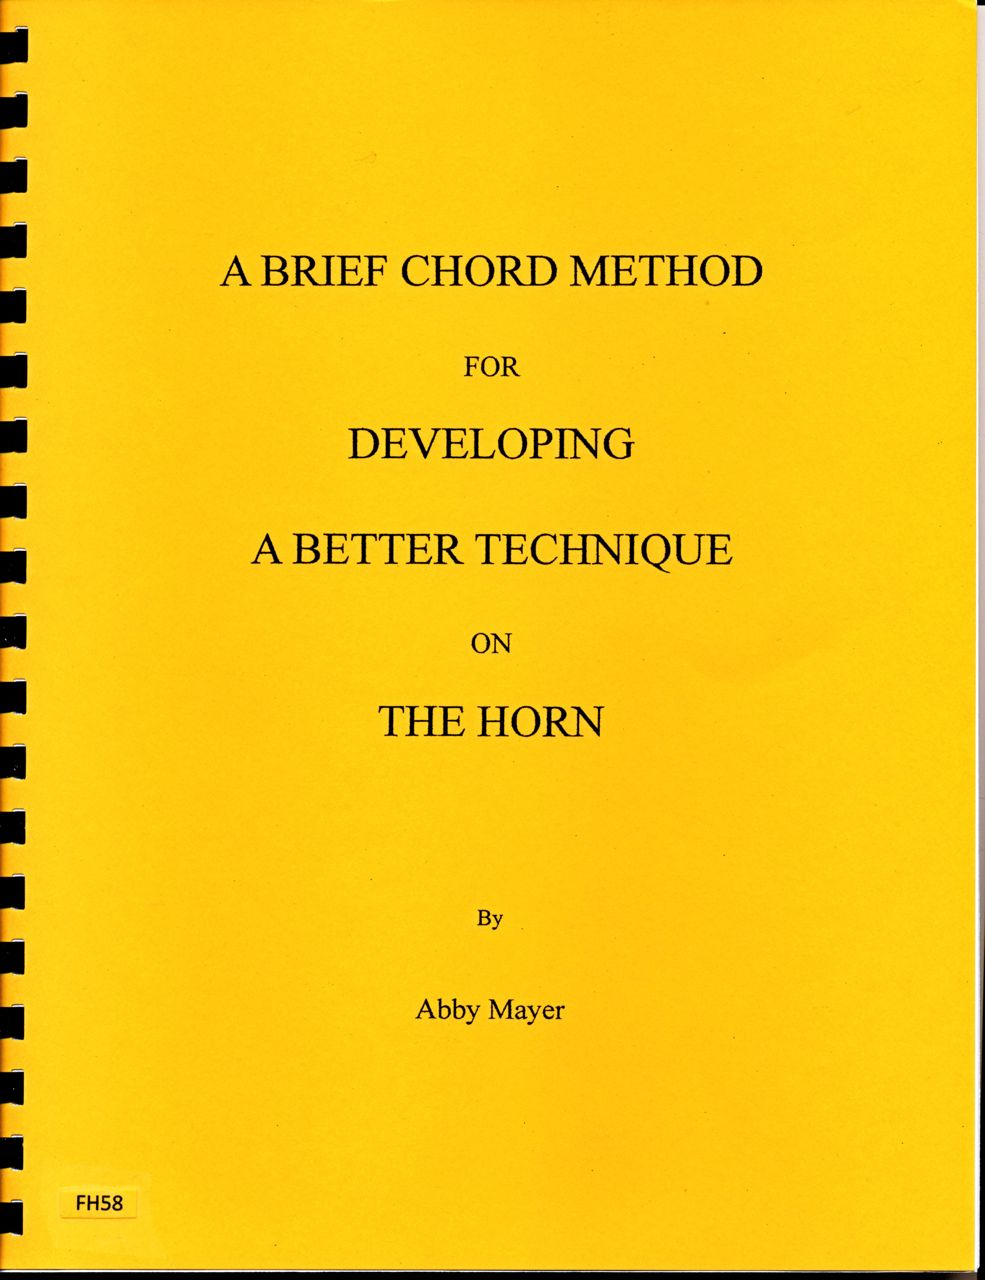 A Brief Chord Method for Developing a Better Technique on the Ho